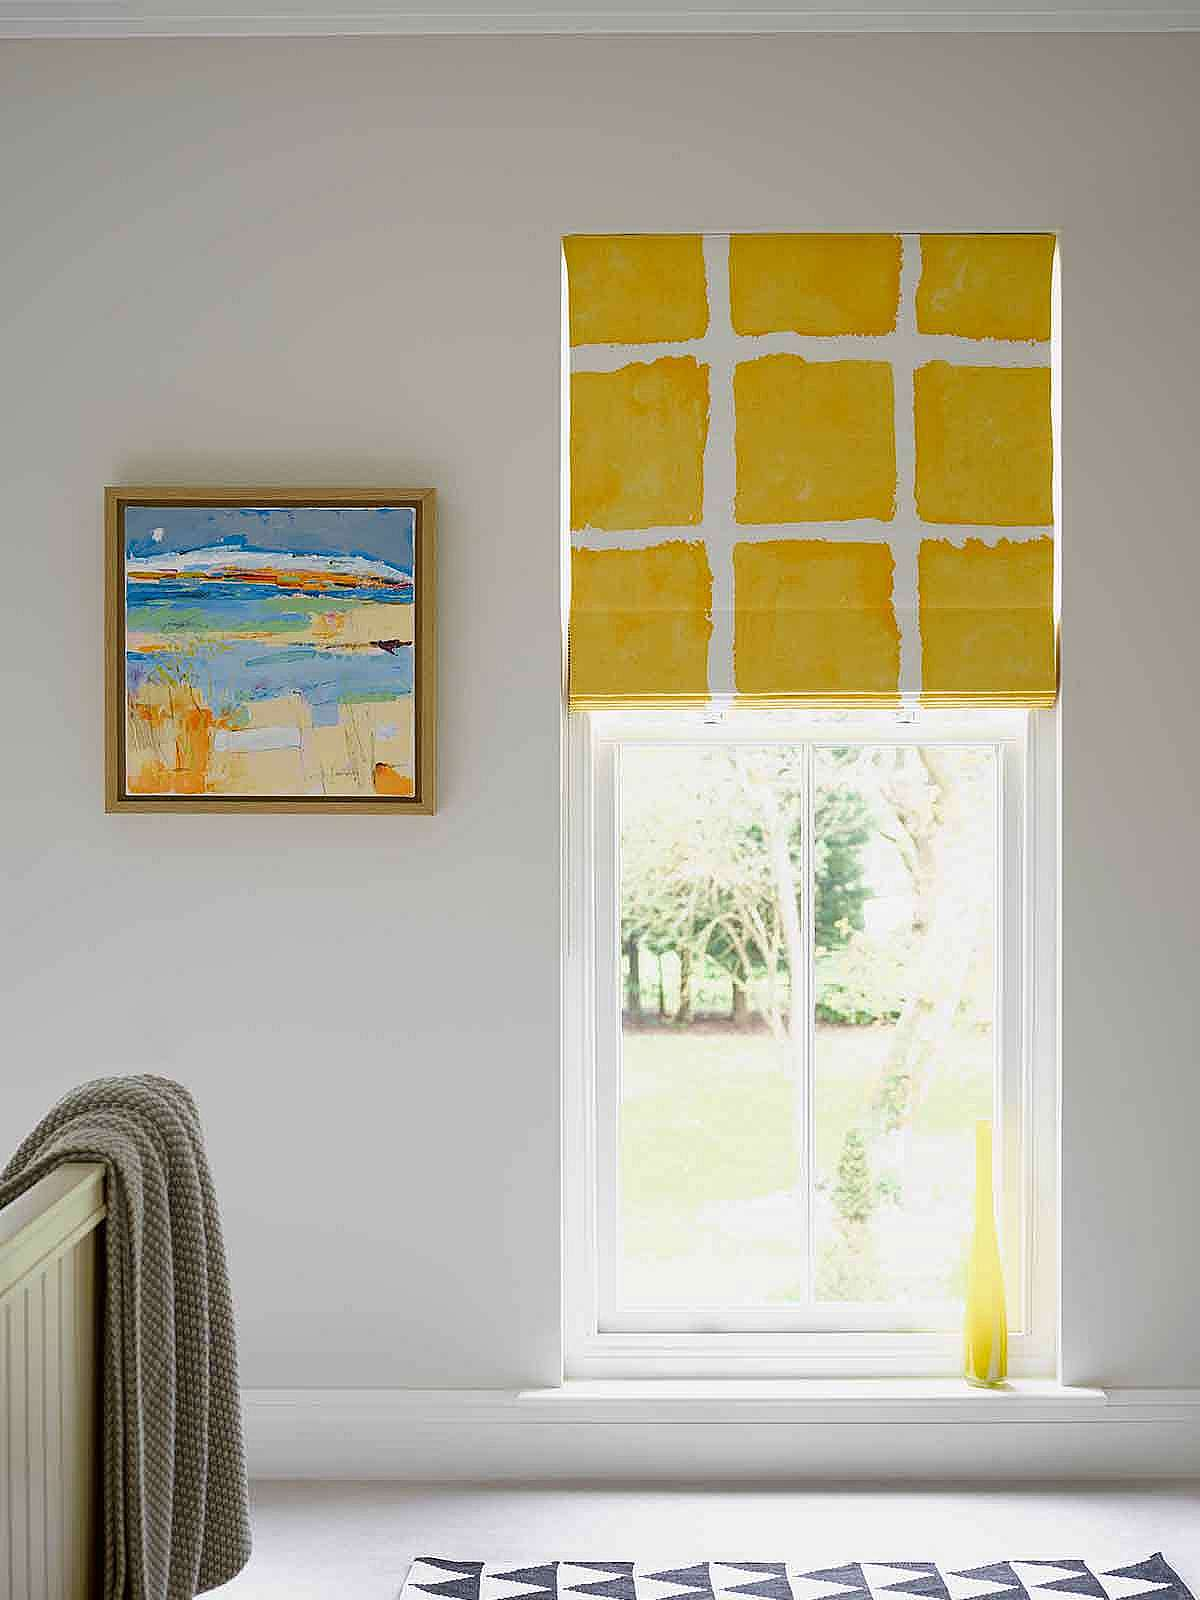 Blackout lined Roman blind